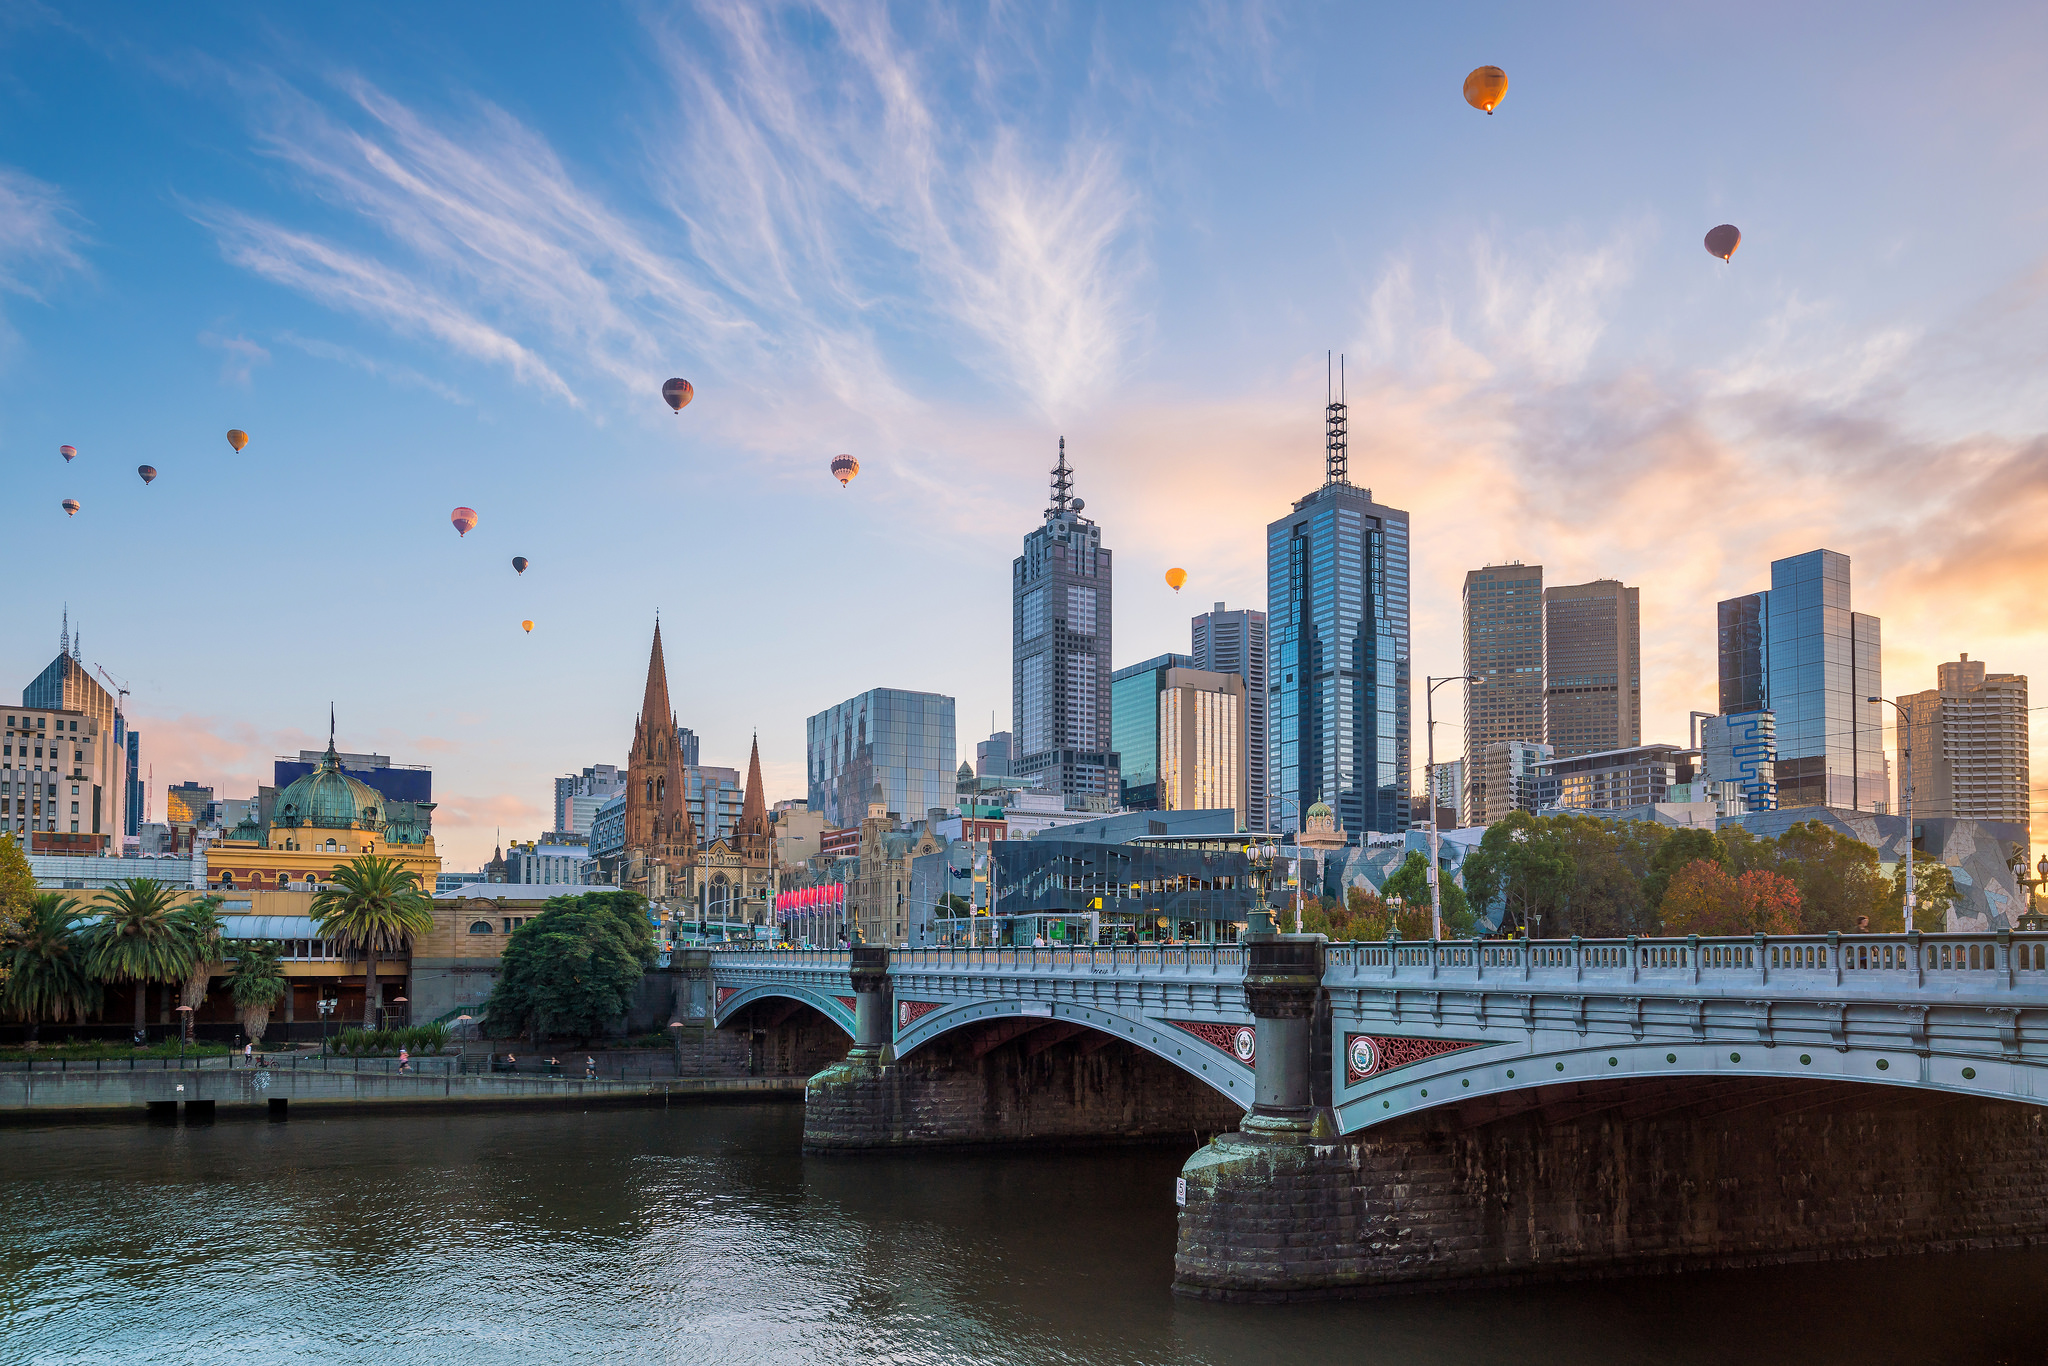 melbourne-hot-air-balloons.jpg